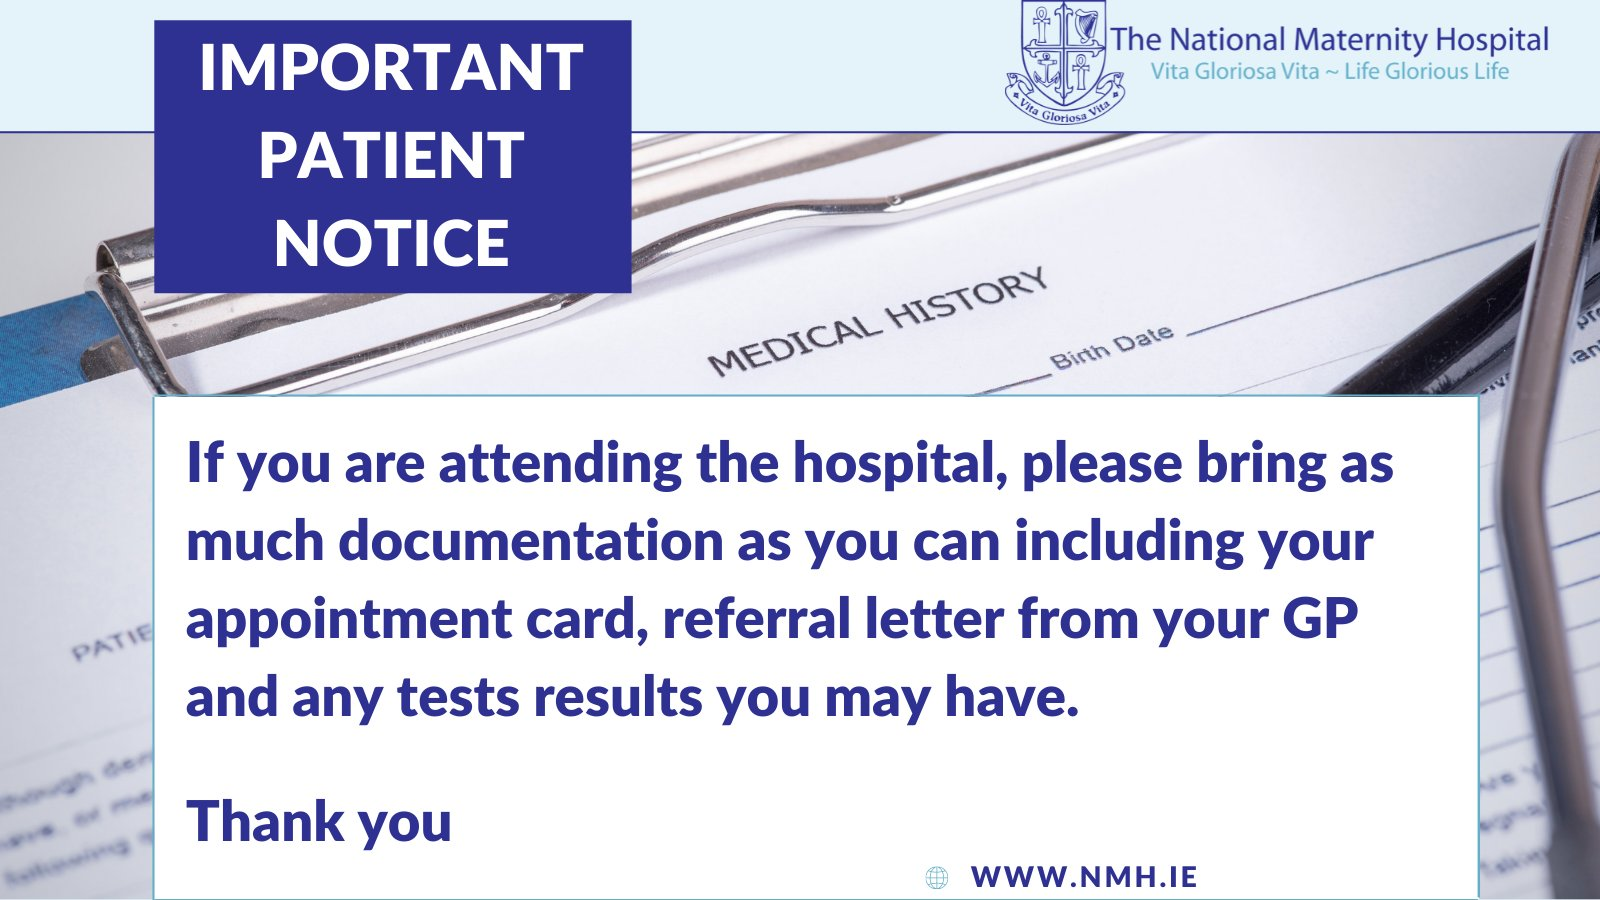 The National Maternity Hospital auf Twitter